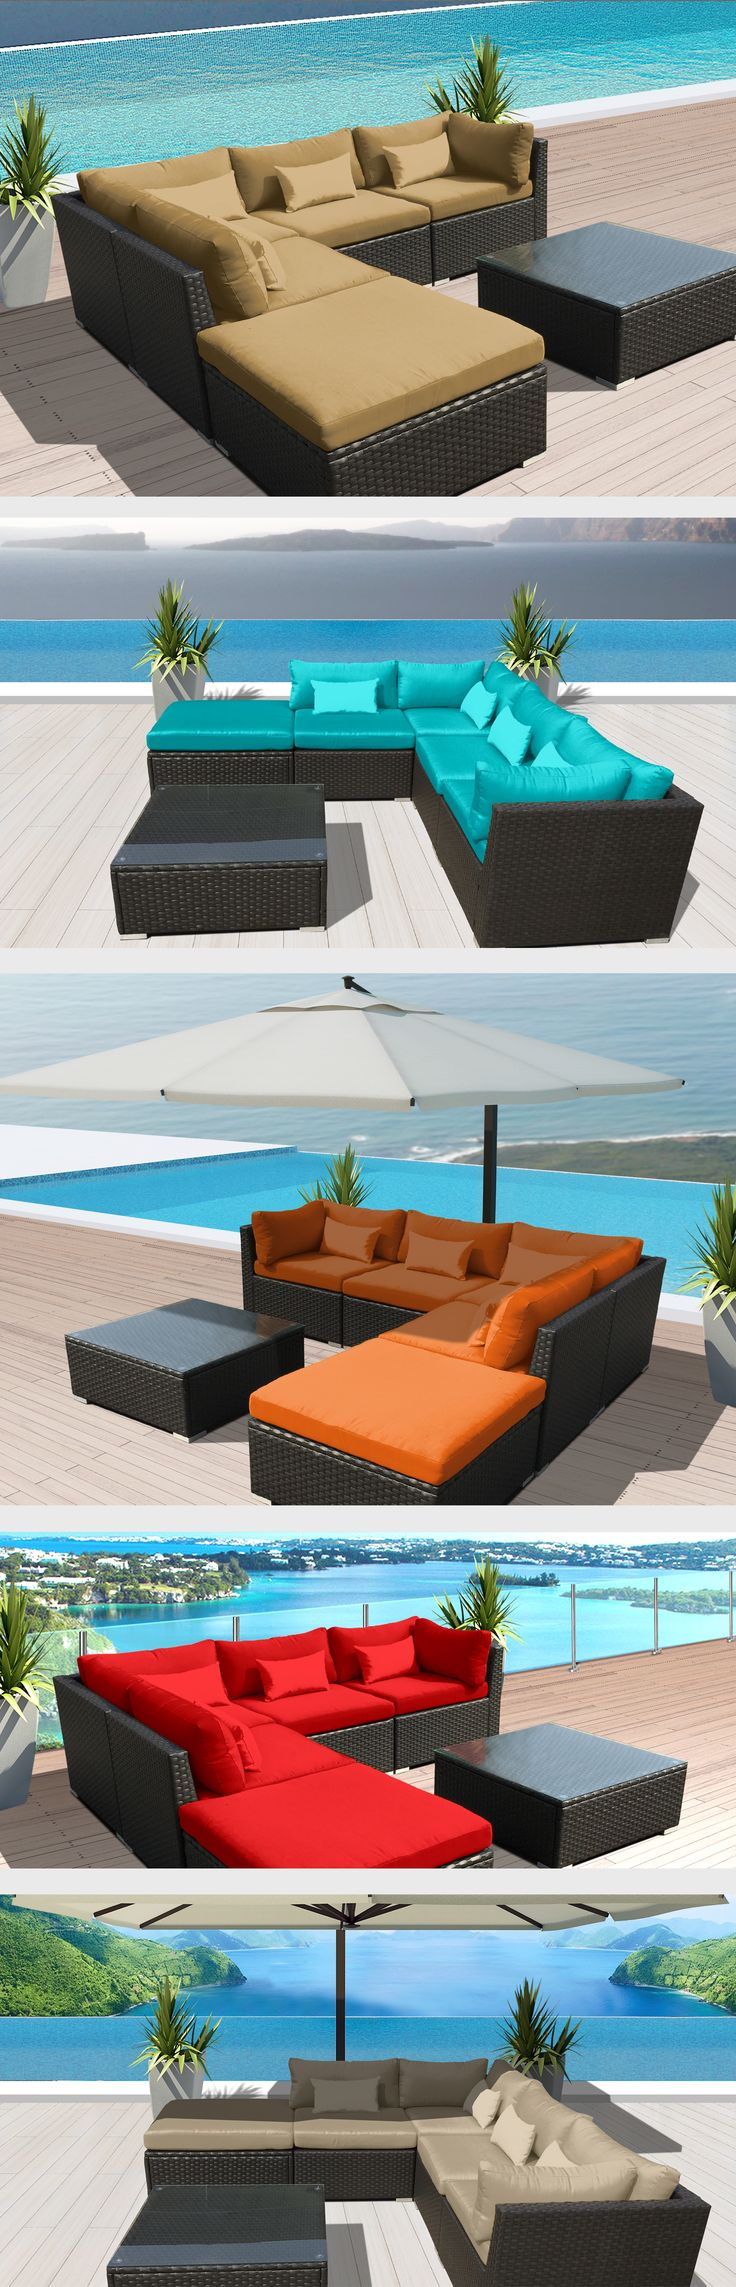 79 best outdoor furniture images on Pinterest | Balcony, Black and ...